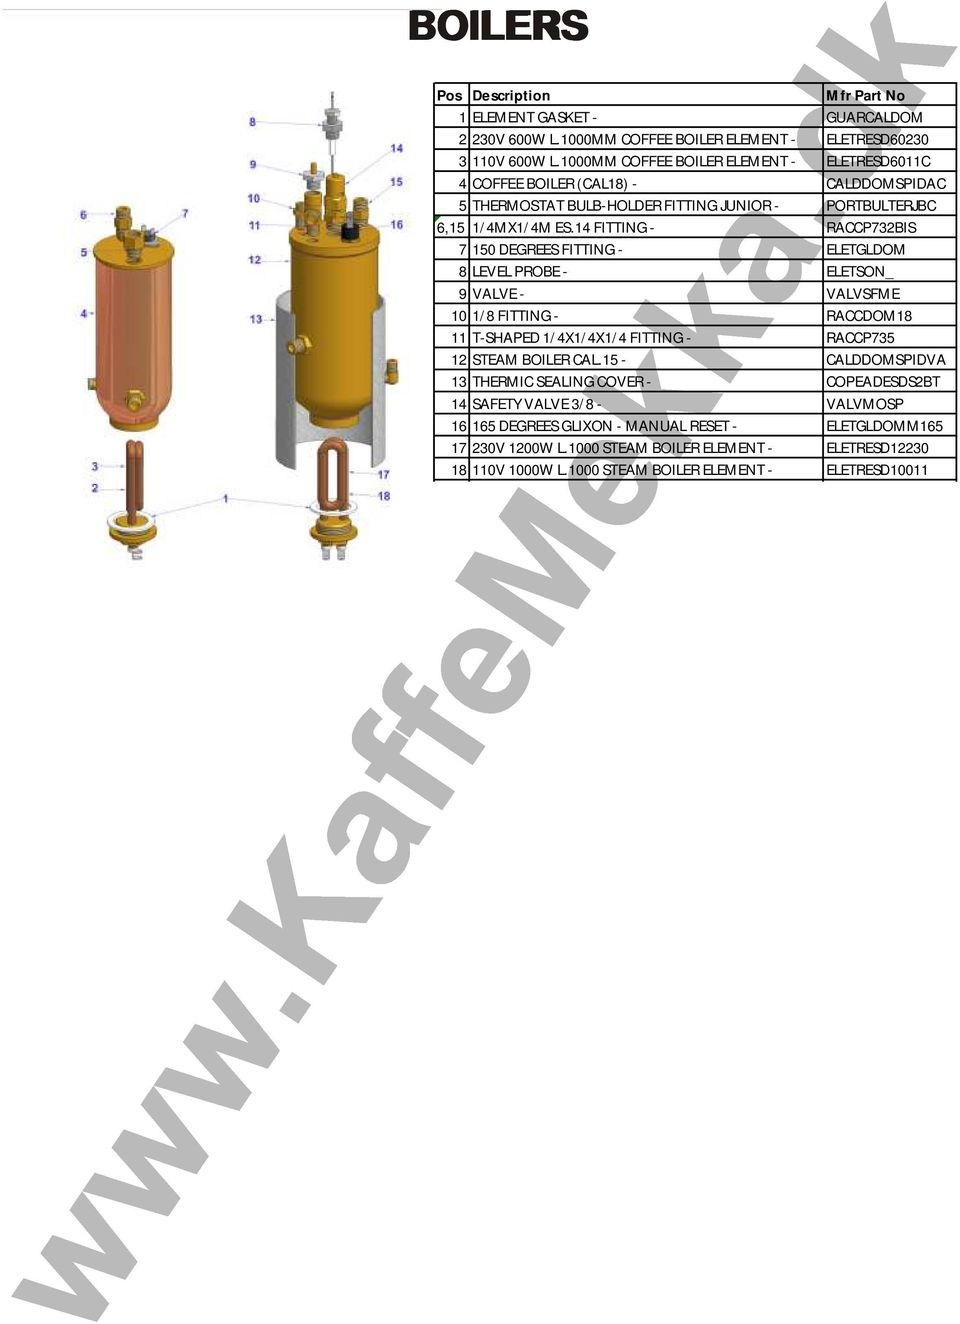 14 FITTING - RACCP732BIS 7 150 DEGREES FITTING - ELETGLDOM 8 LEVEL PROBE - ELETSON_ 9 VALVE - VALVSFME 10 1/8 FITTING - RACCDOM18 11 T-SHAPED 1/4X1/4X1/4 FITTING - RACCP735 12 STEAM